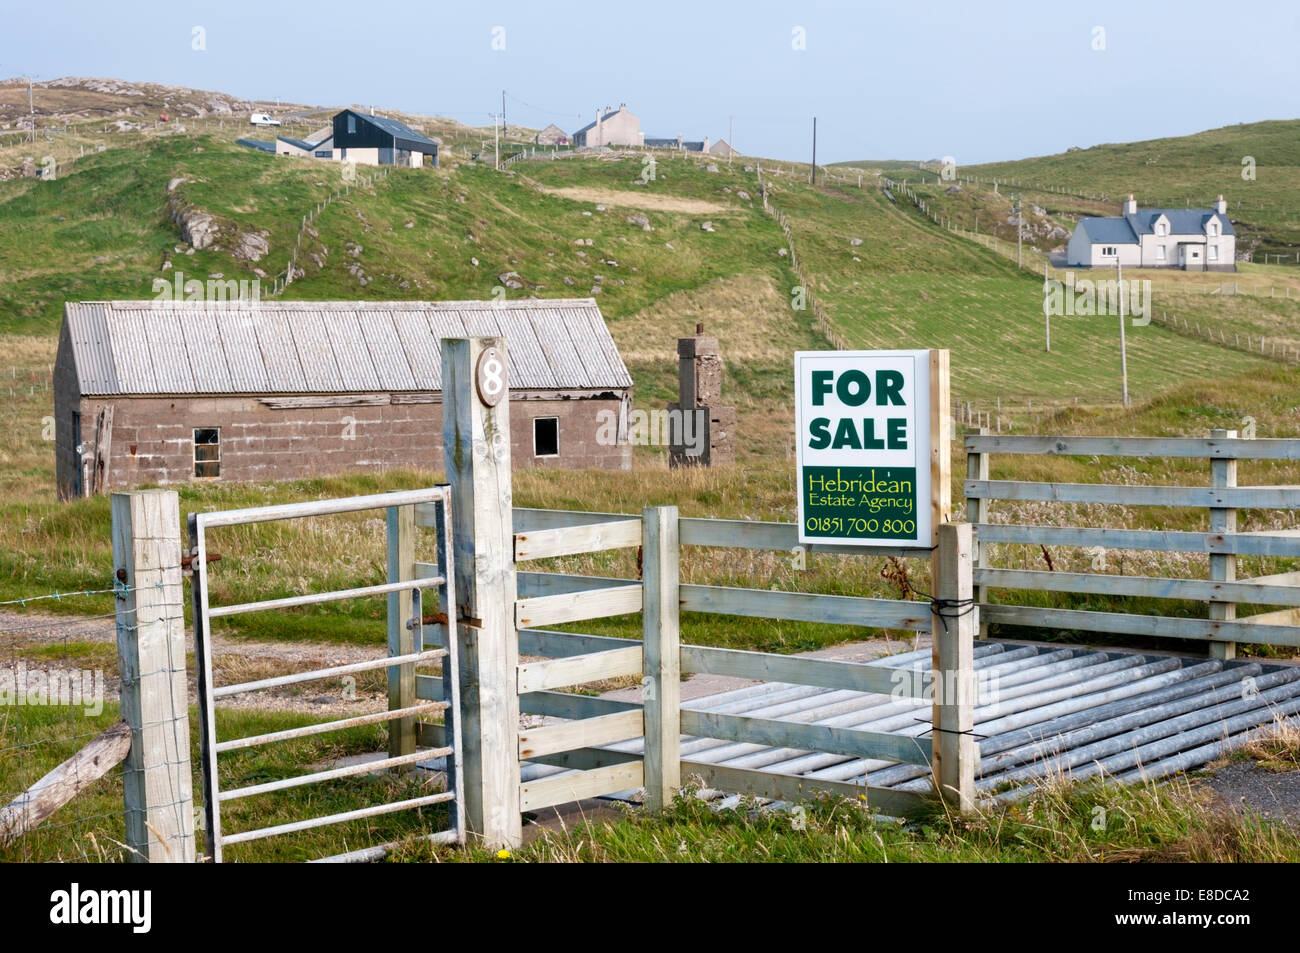 A For Sale sign on land in the Outer Hebrides. - Stock Image